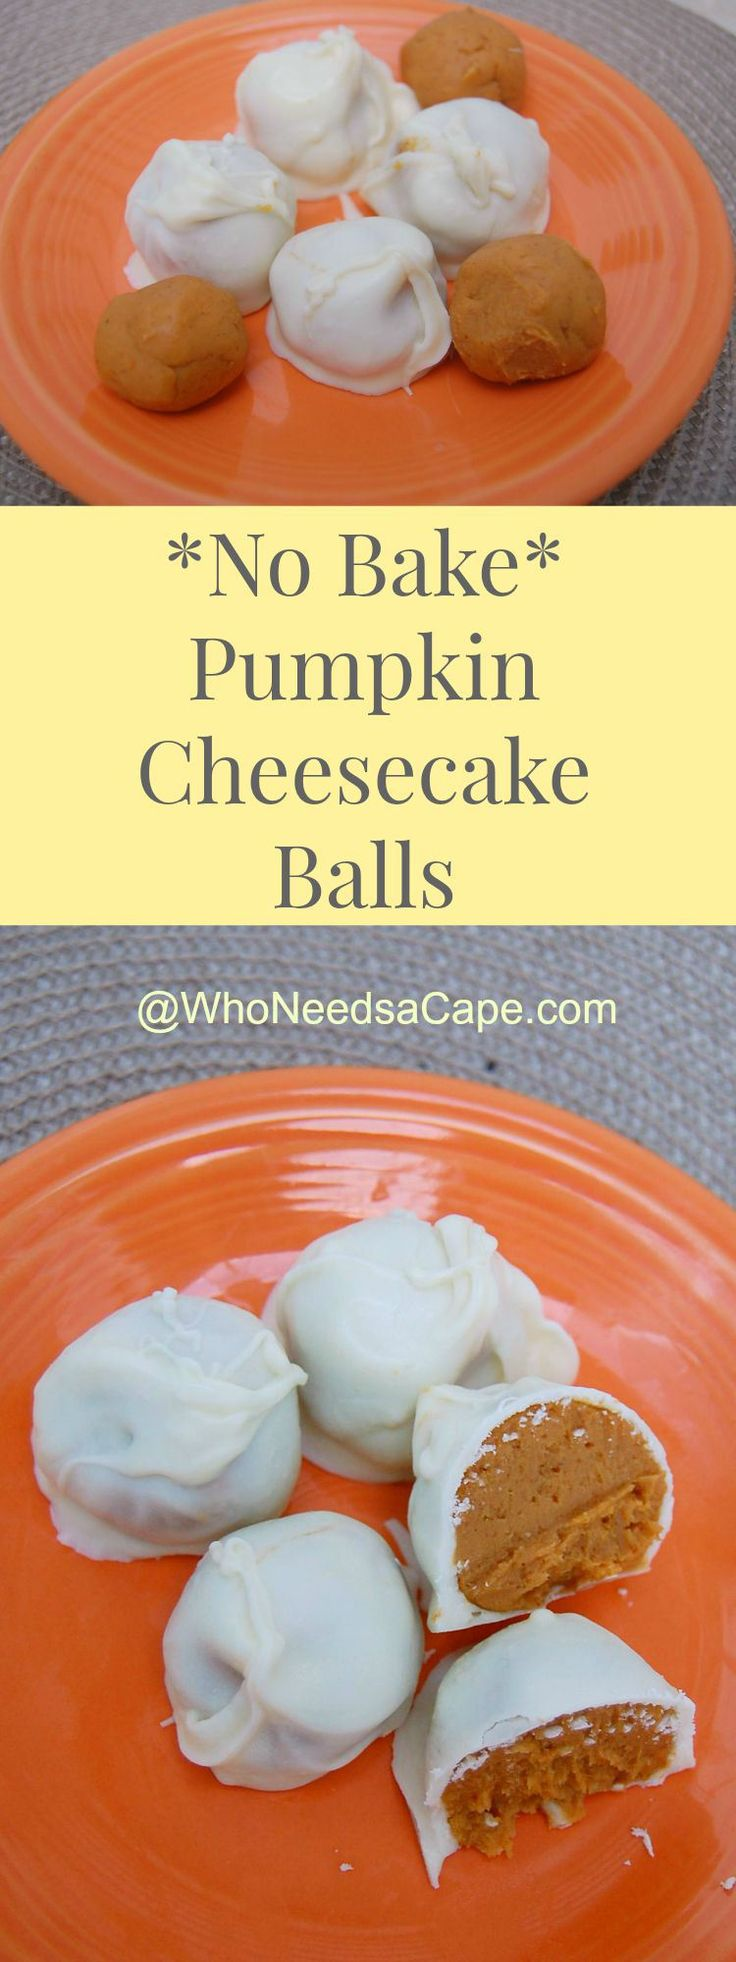 No Bake Pumpkin Cheesecake Balls - perfect pumpkin no bake treat!